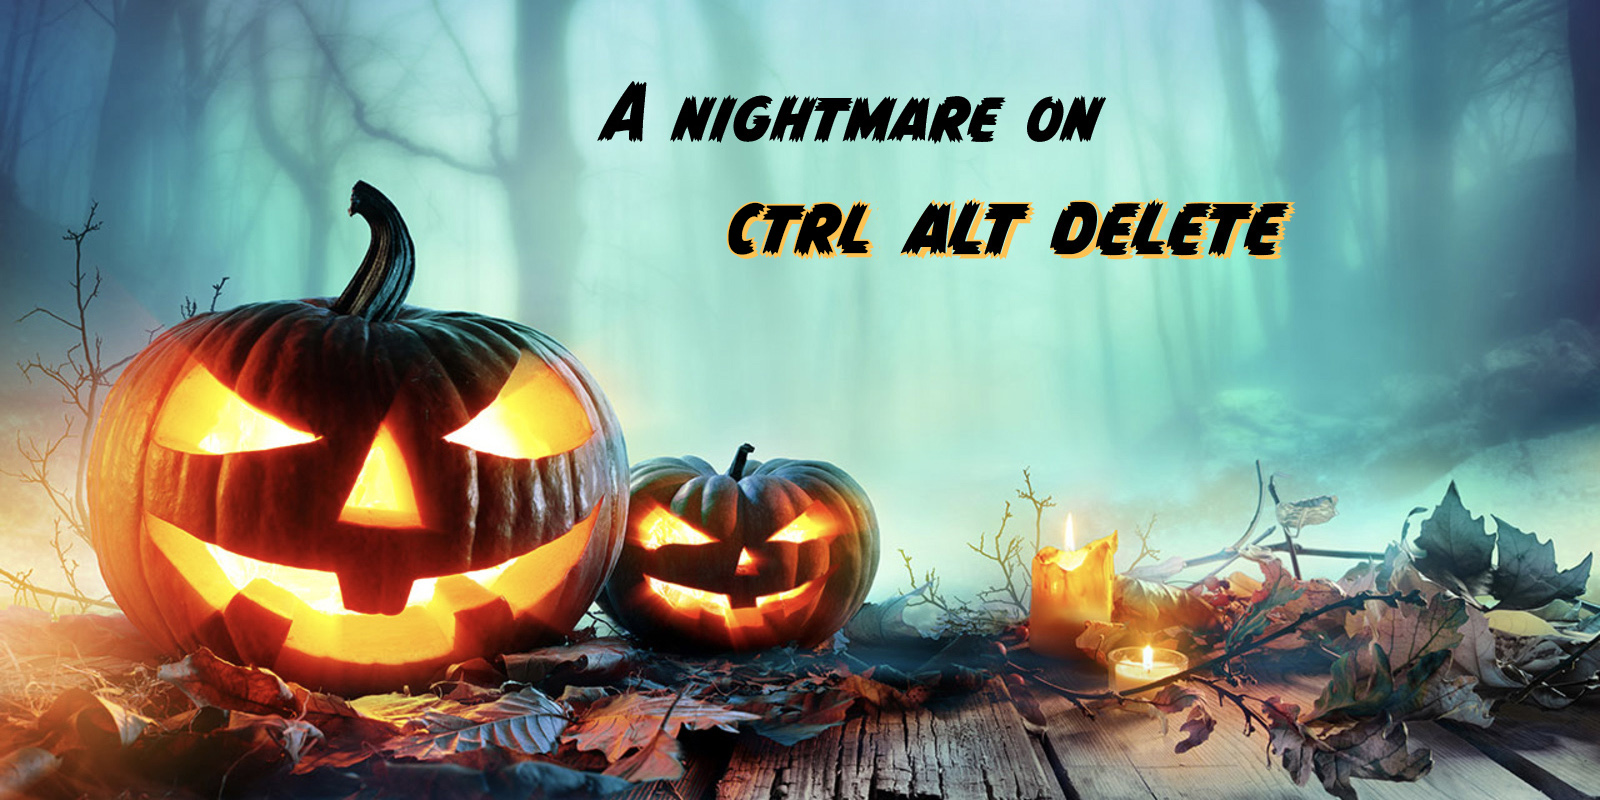 A nightmare on ctrl alt delete